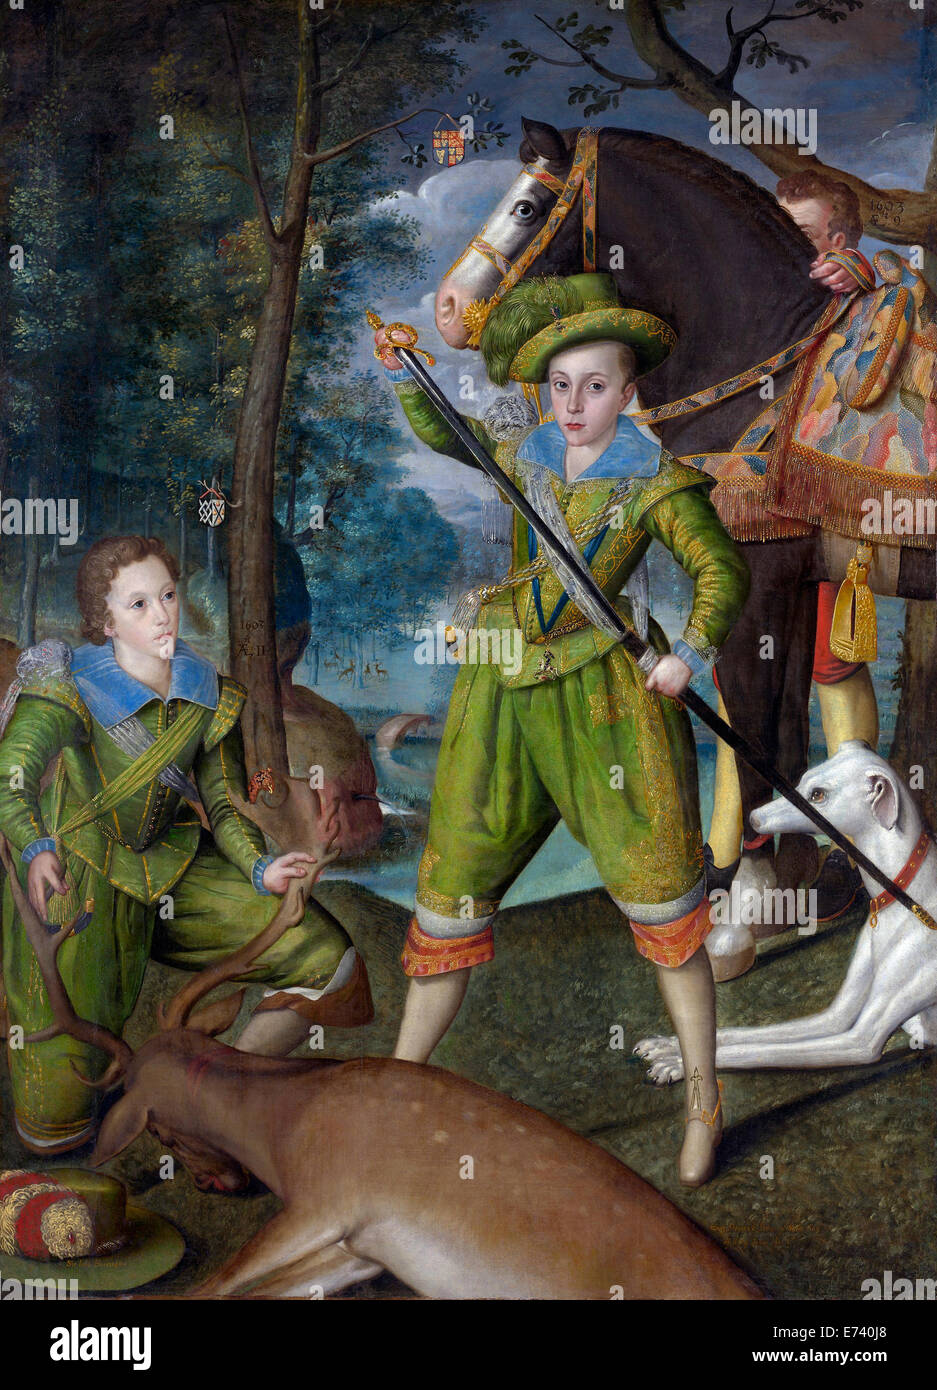 Henry Frederick, Prince of Wales, and John Harington in Hunting Field - by Robert Peake the Elder, 1603 - Stock Image